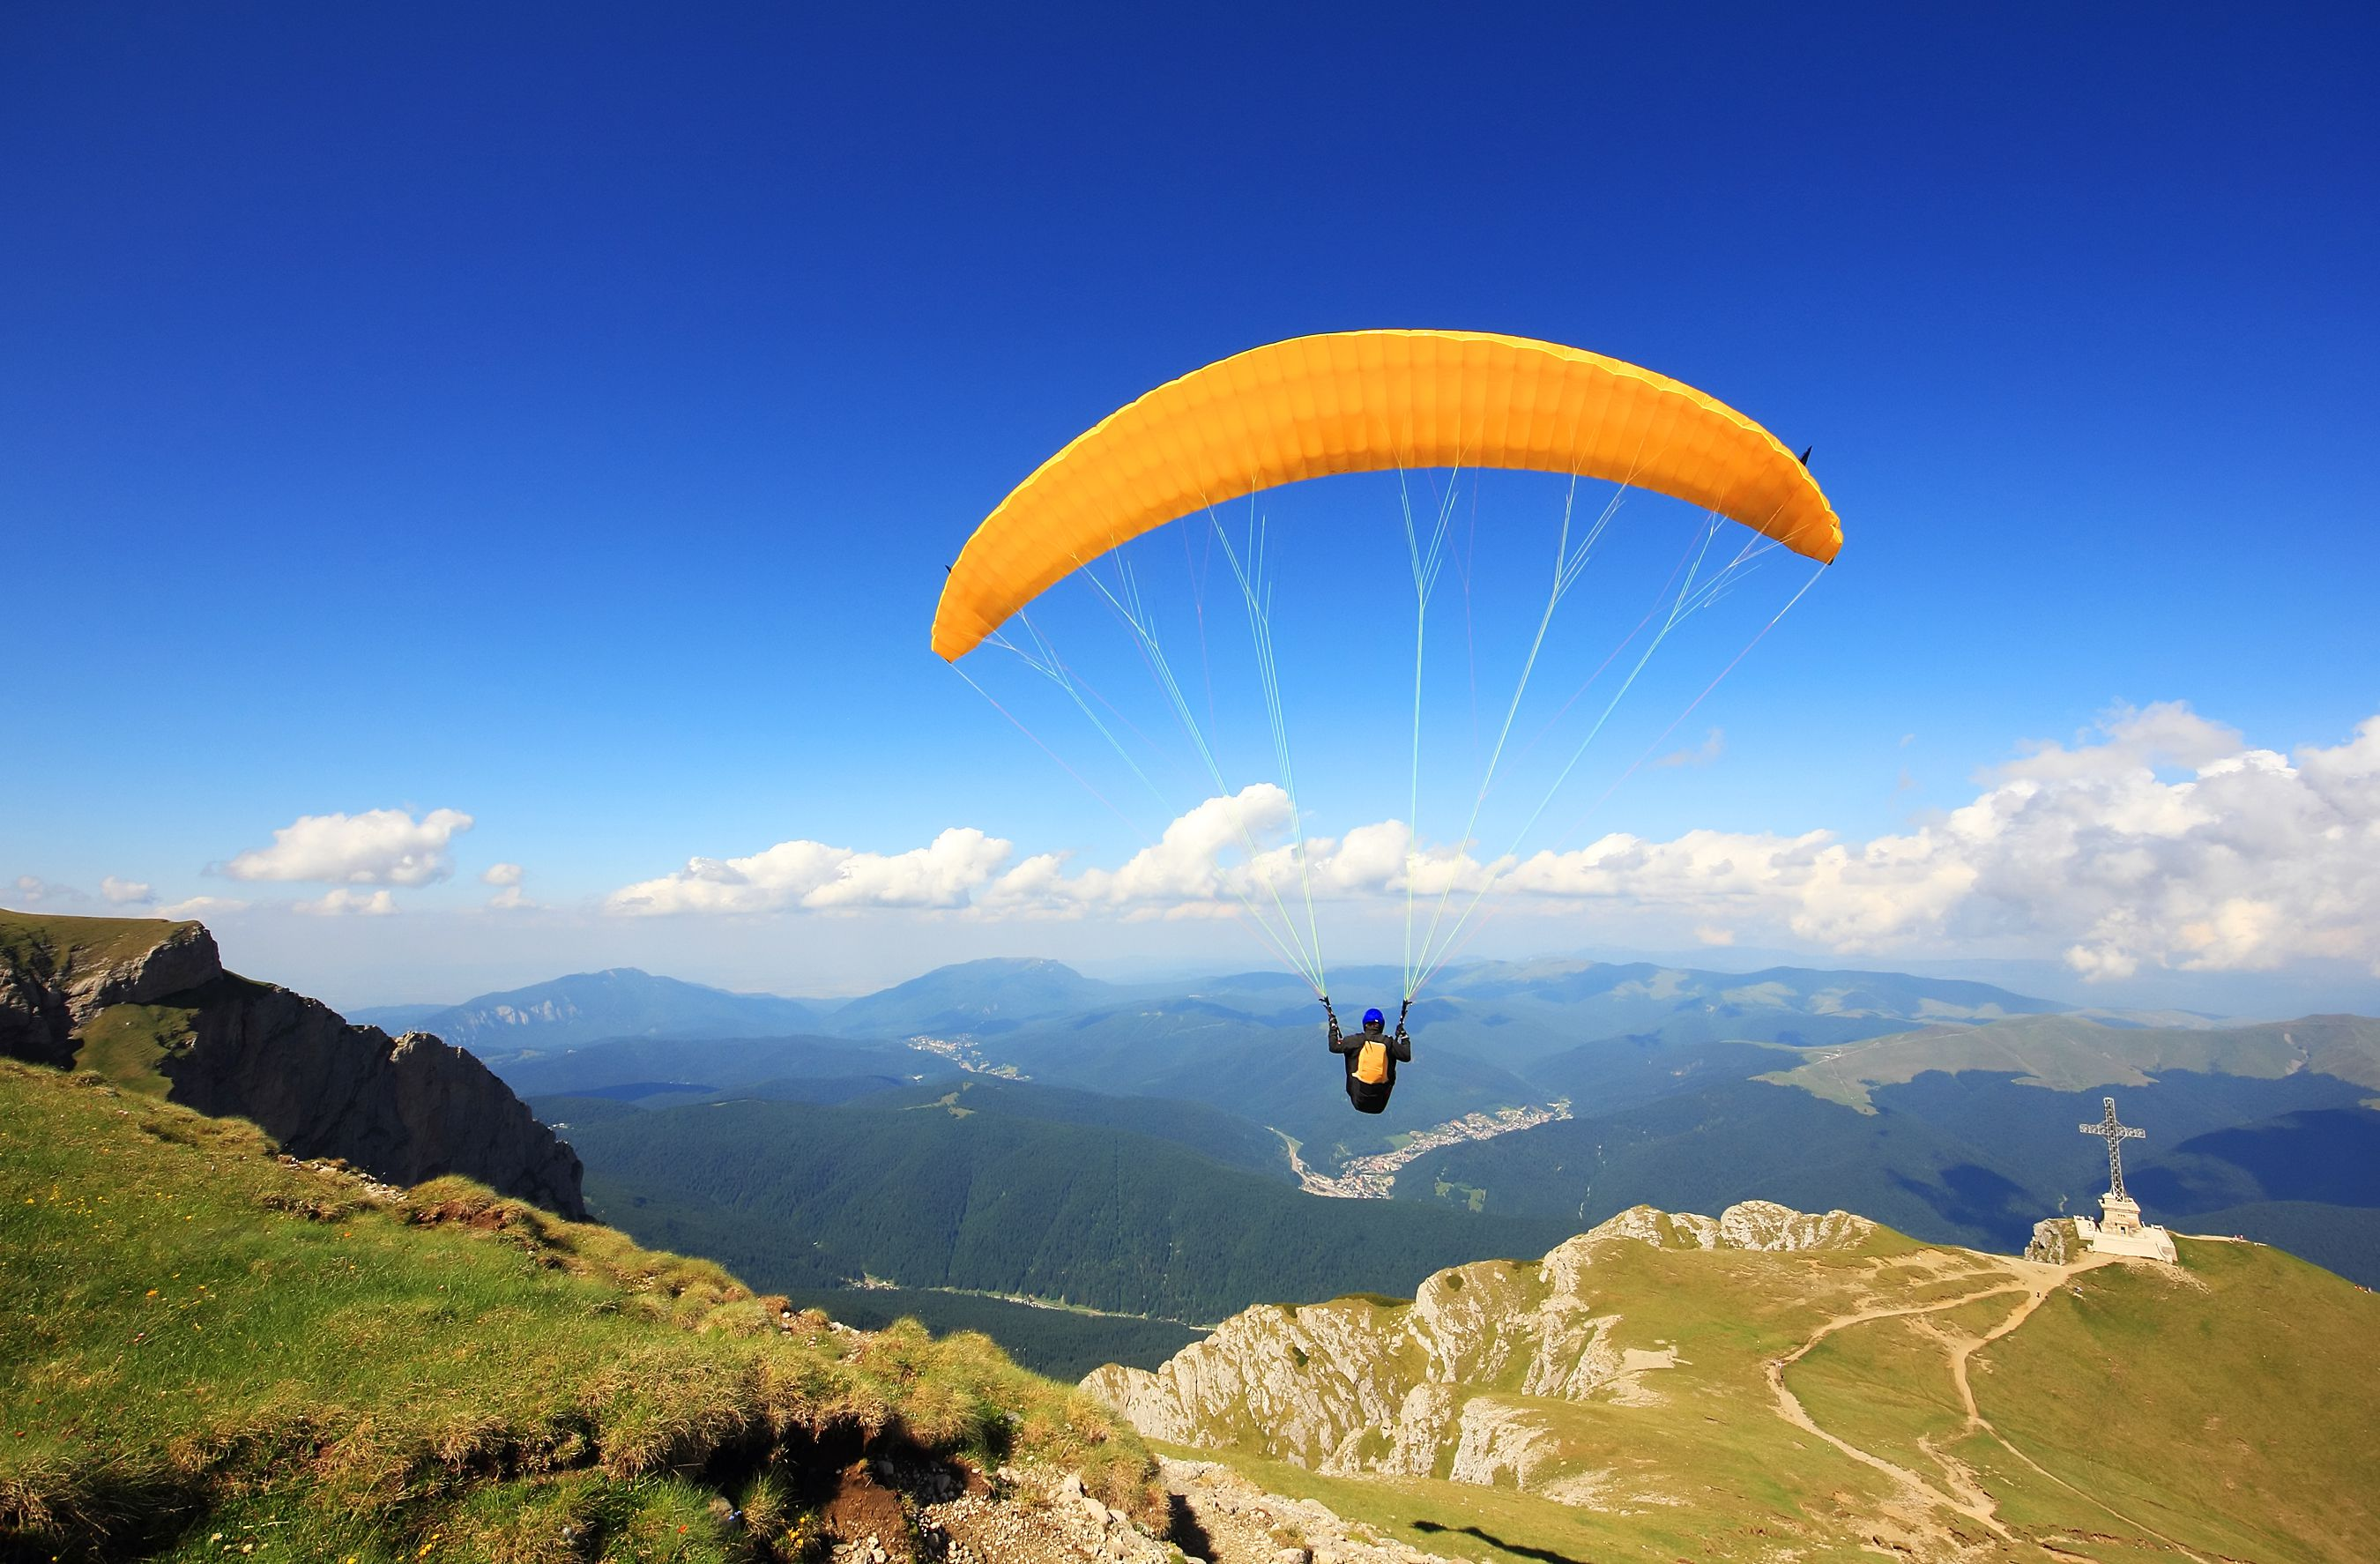 The 15 Best Places in the World to Go Paragliding